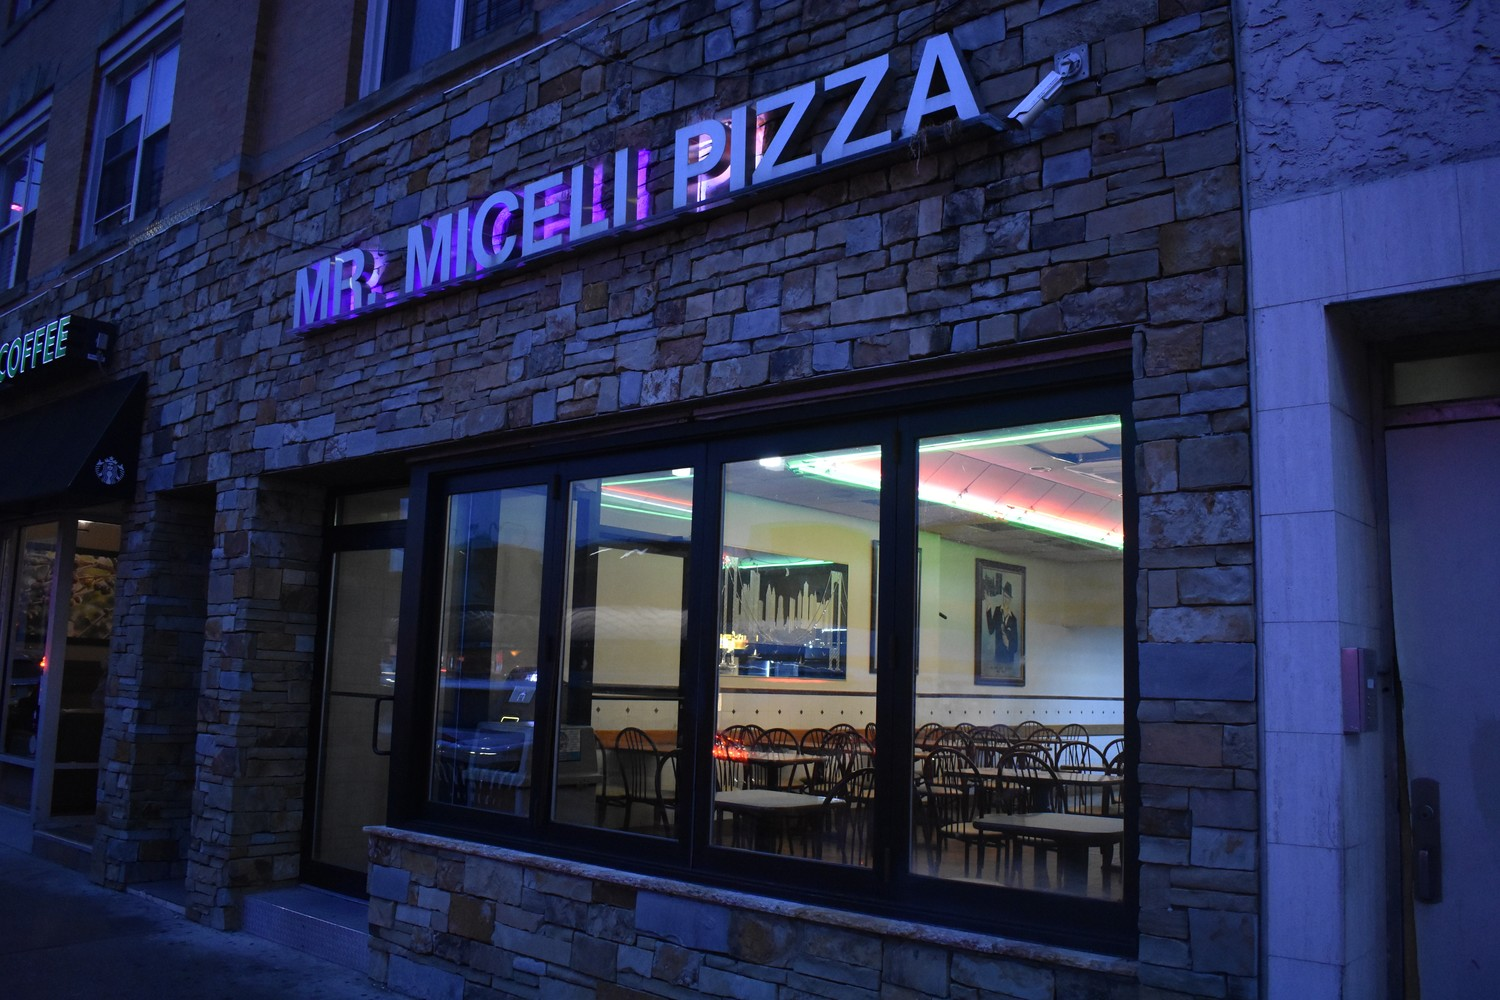 The pizzeria that has served the community for 36 years had moved from Sunrise Highway to North Park Avenue in 1992, and stayed there until it closed.